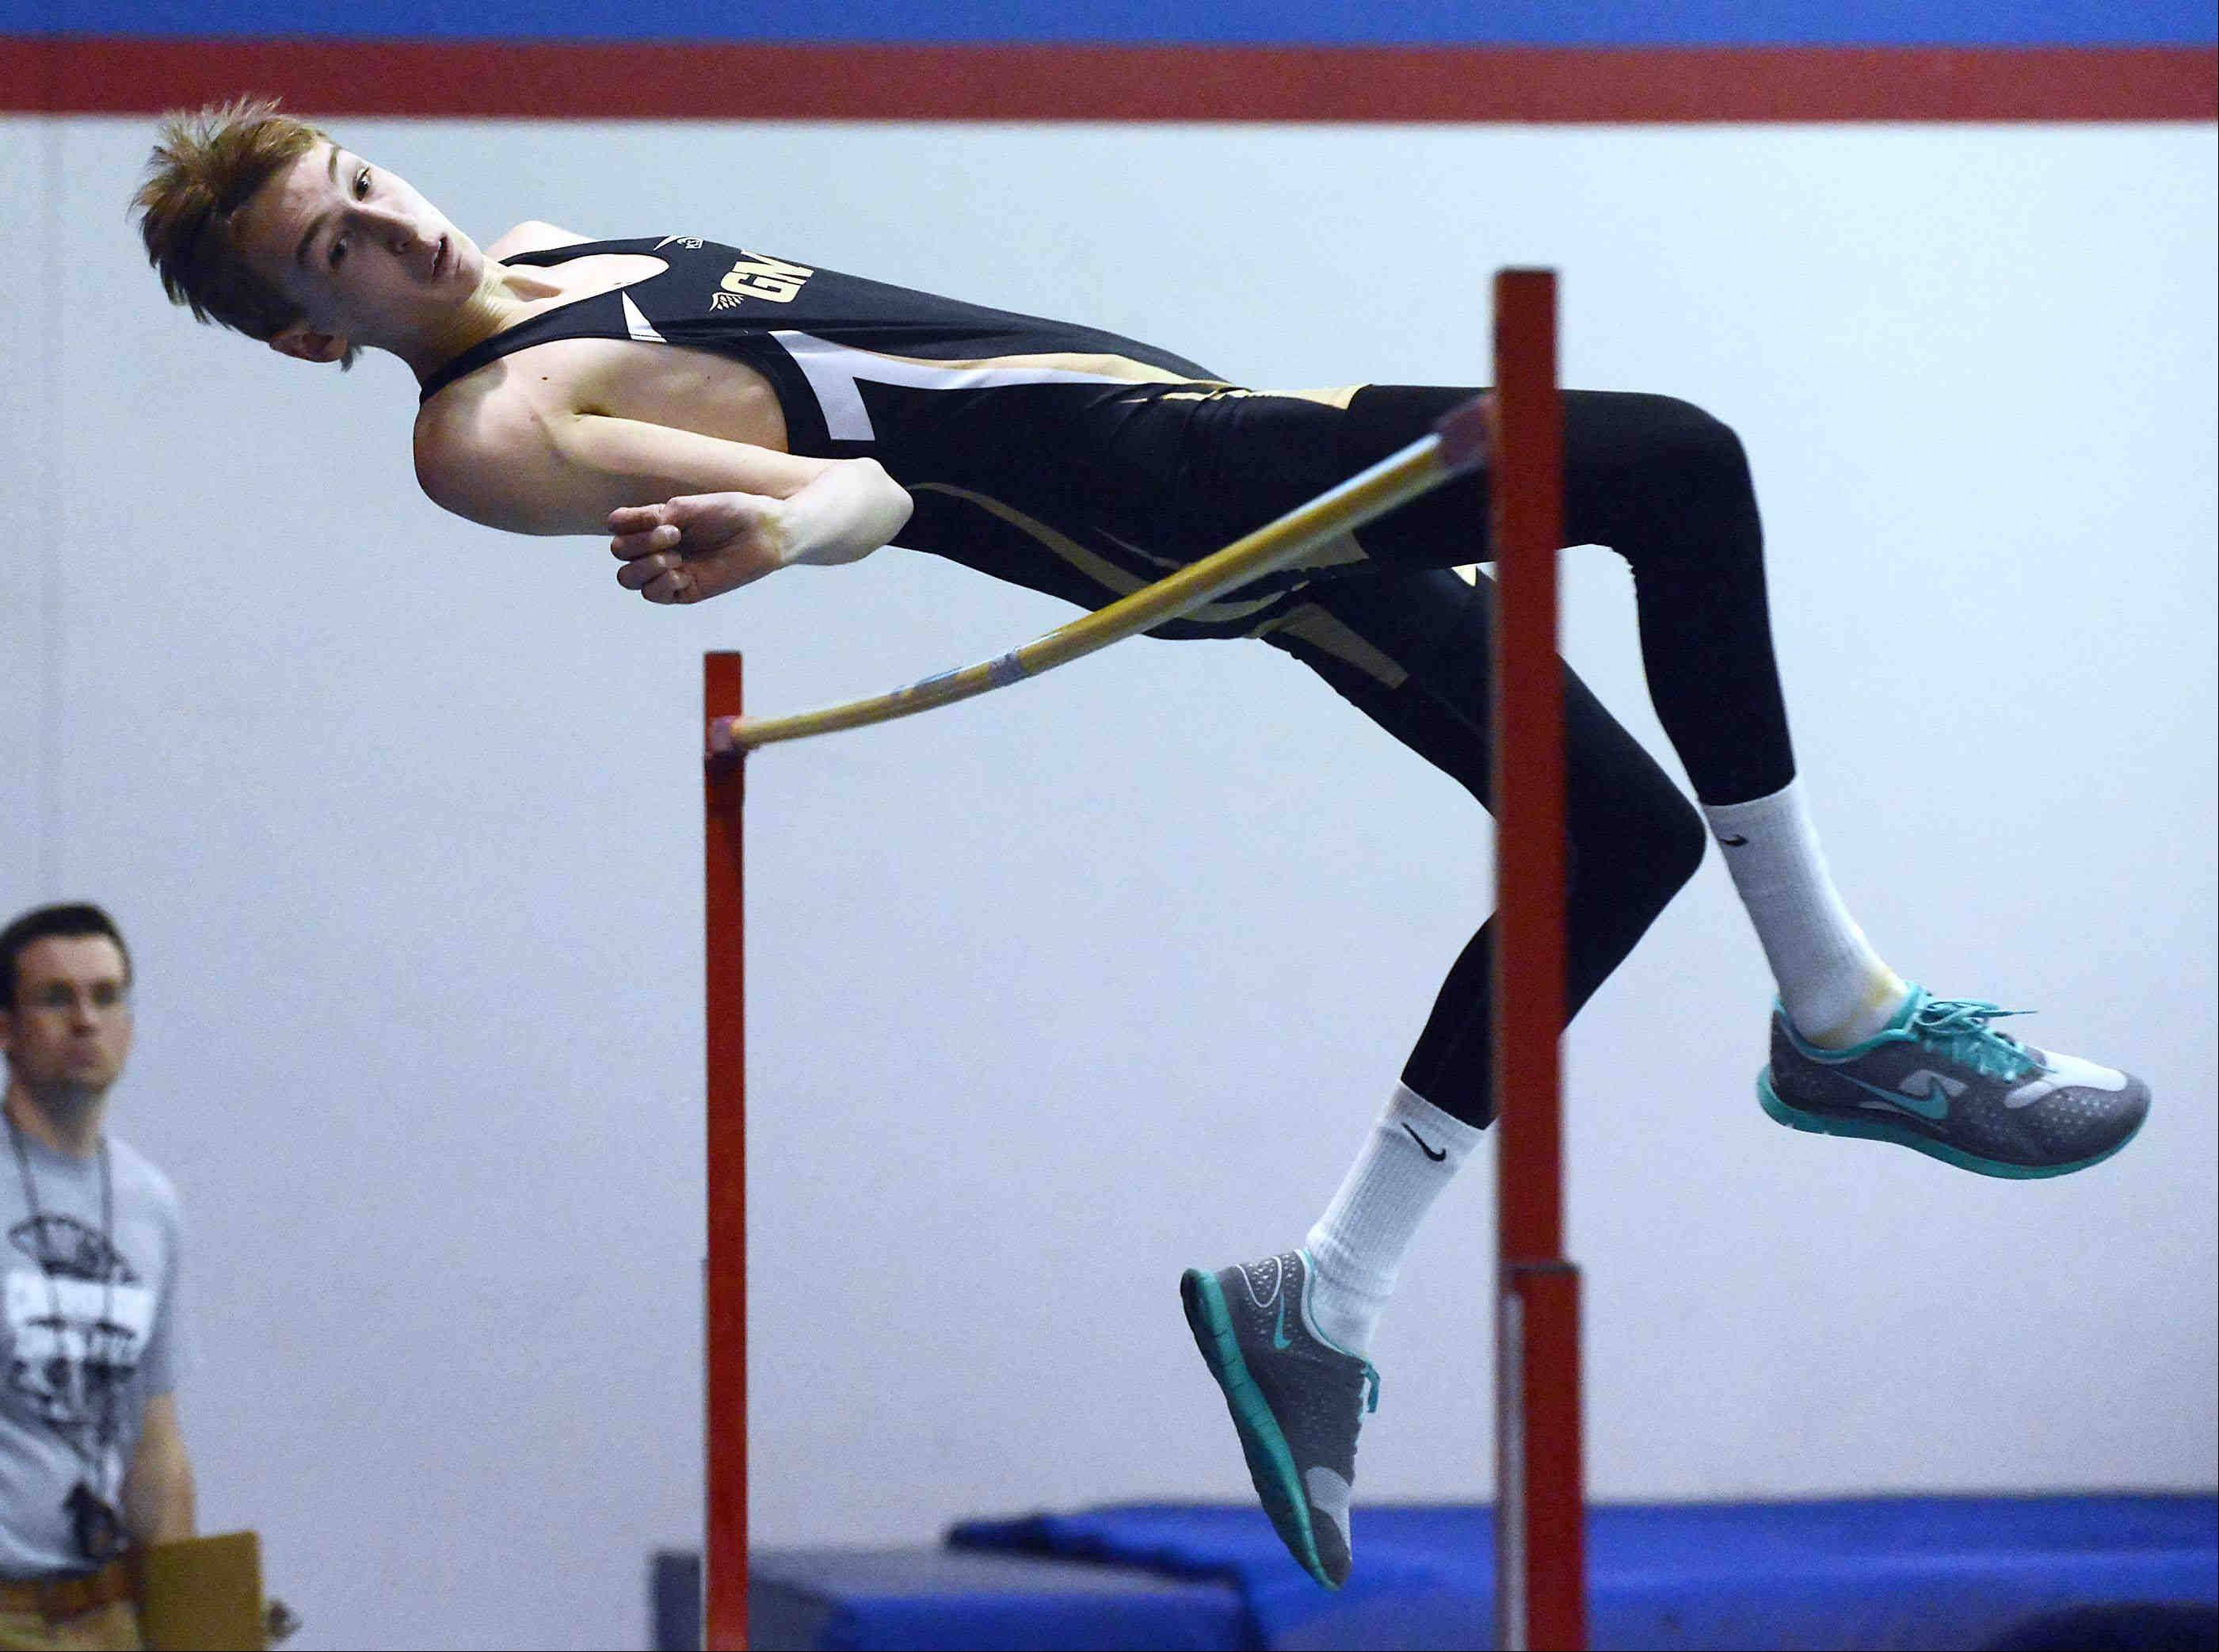 Grayslake North's Dylan Toole wins the high jump event and sets a school record Wednesday at the Dundee-Crown Indoor Track Invitational in Carpentersville.